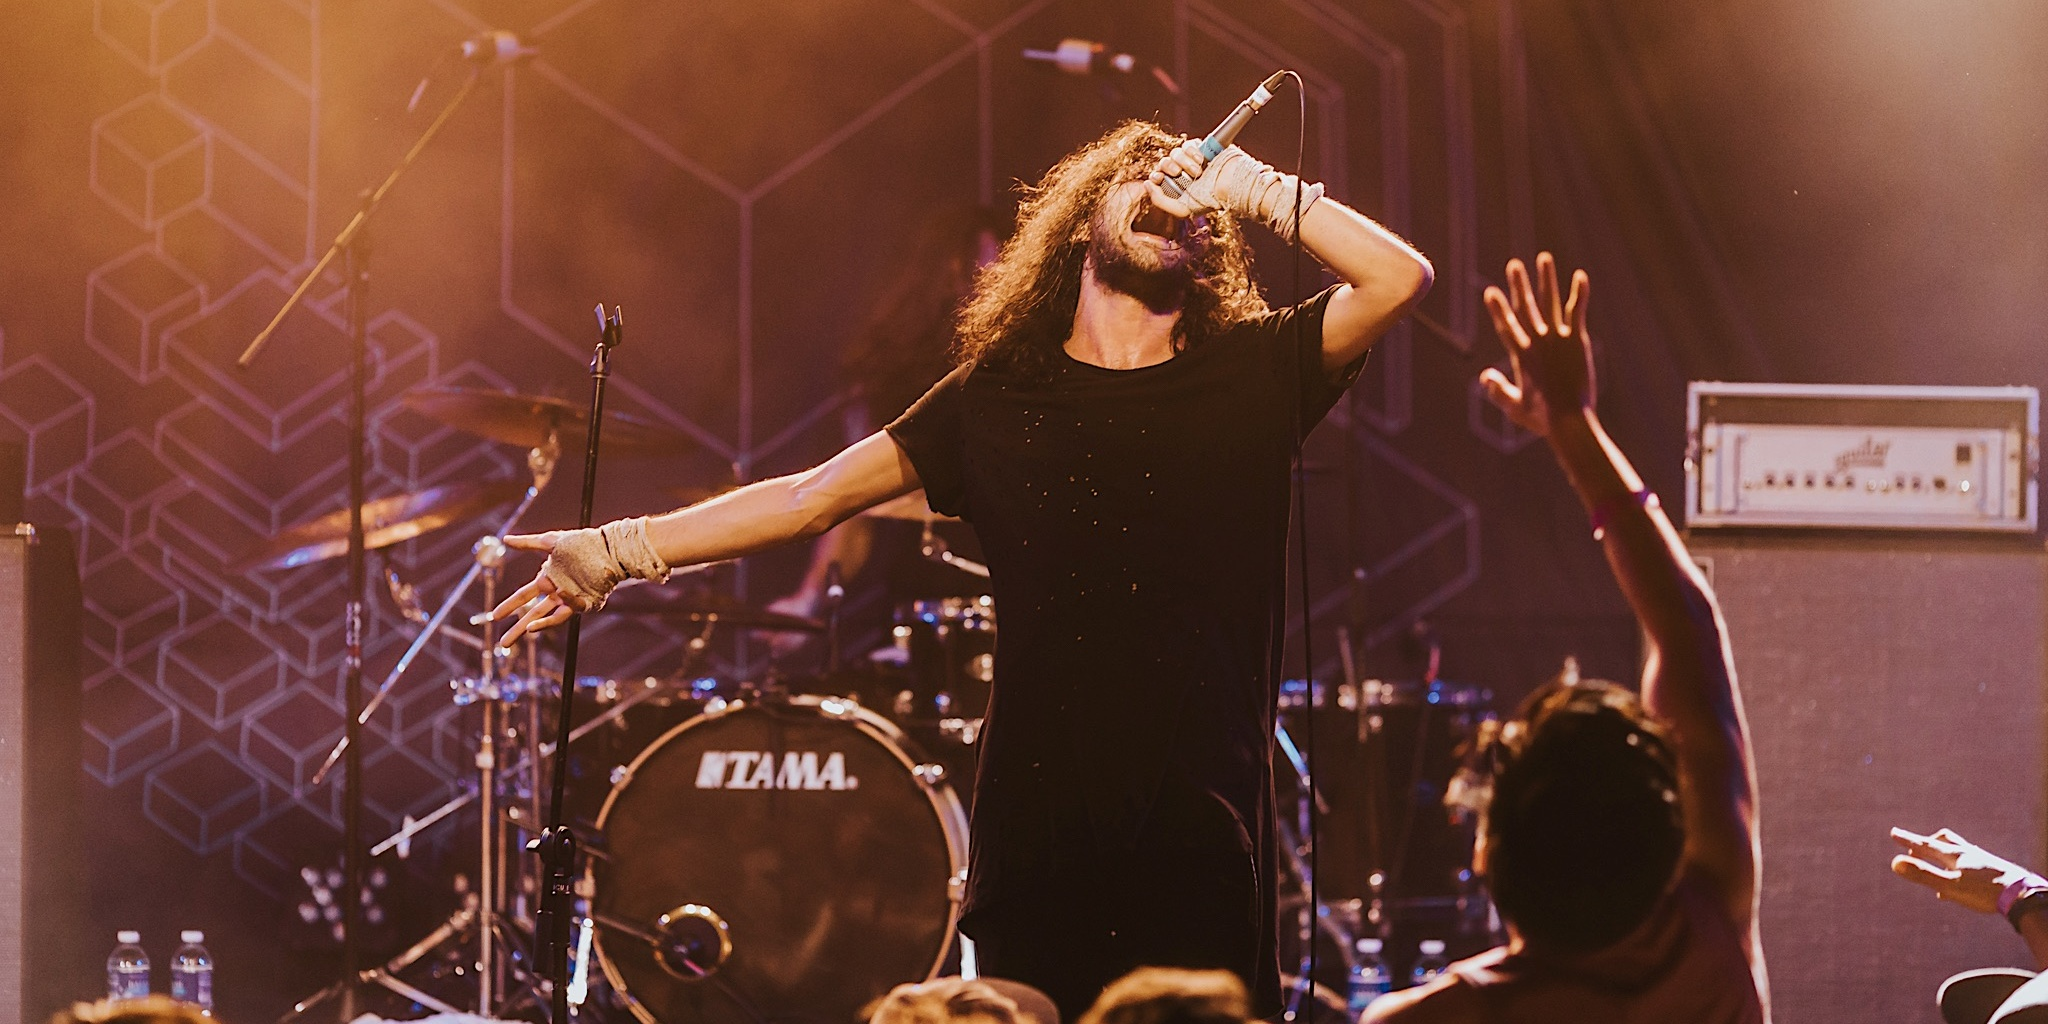 Northlane brings their melt-your-face-off metal to Singapore — photo gallery